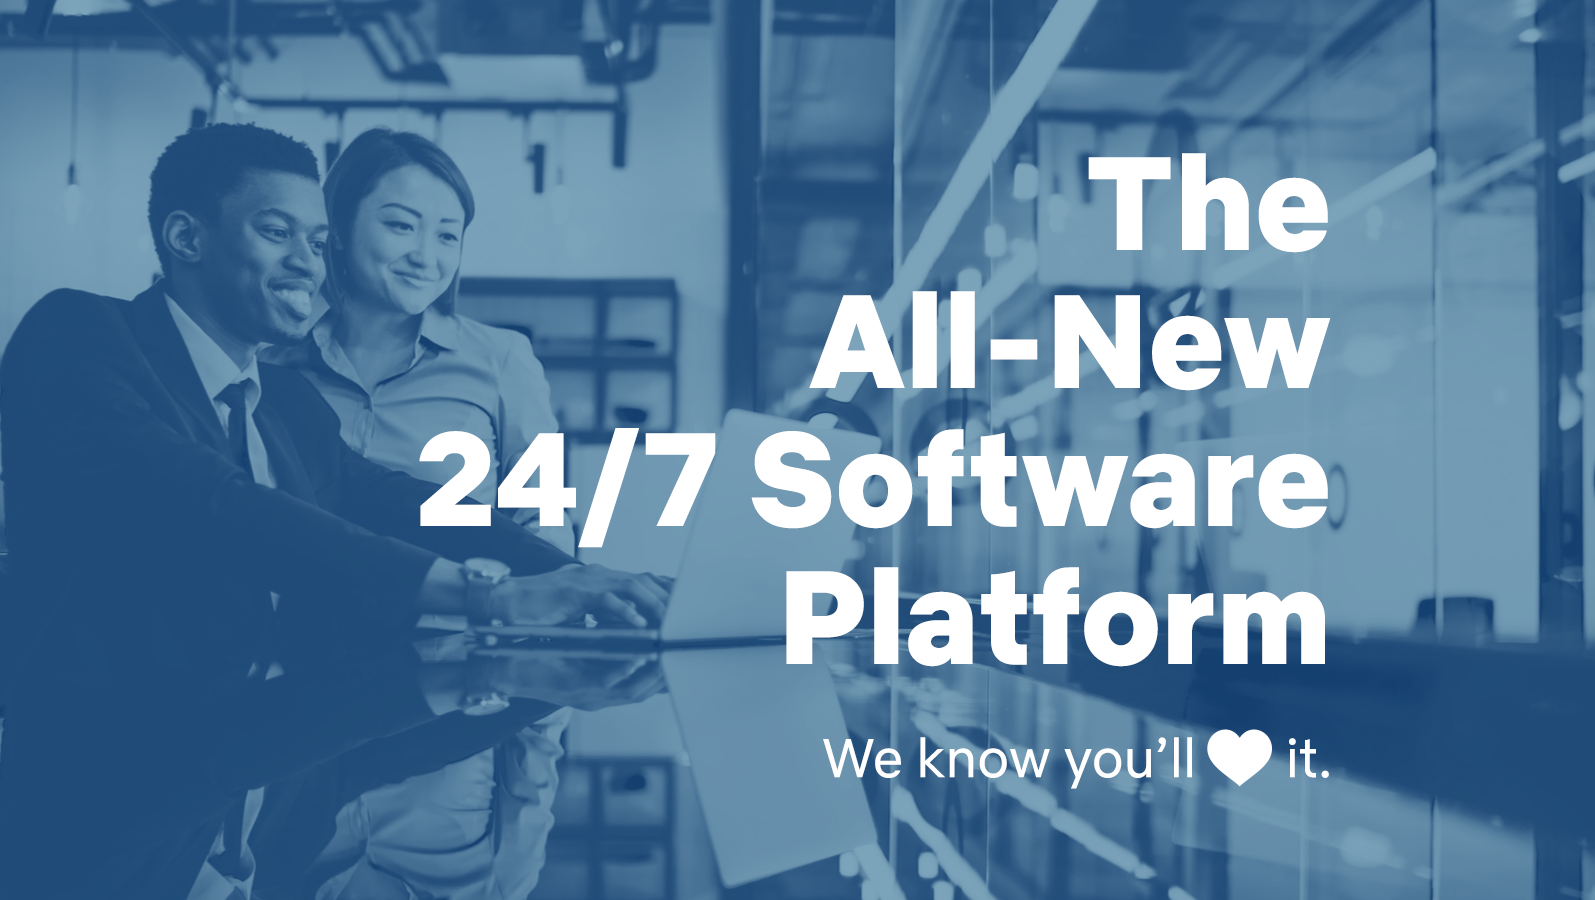 24/7 Software Launches Its All-New Platform